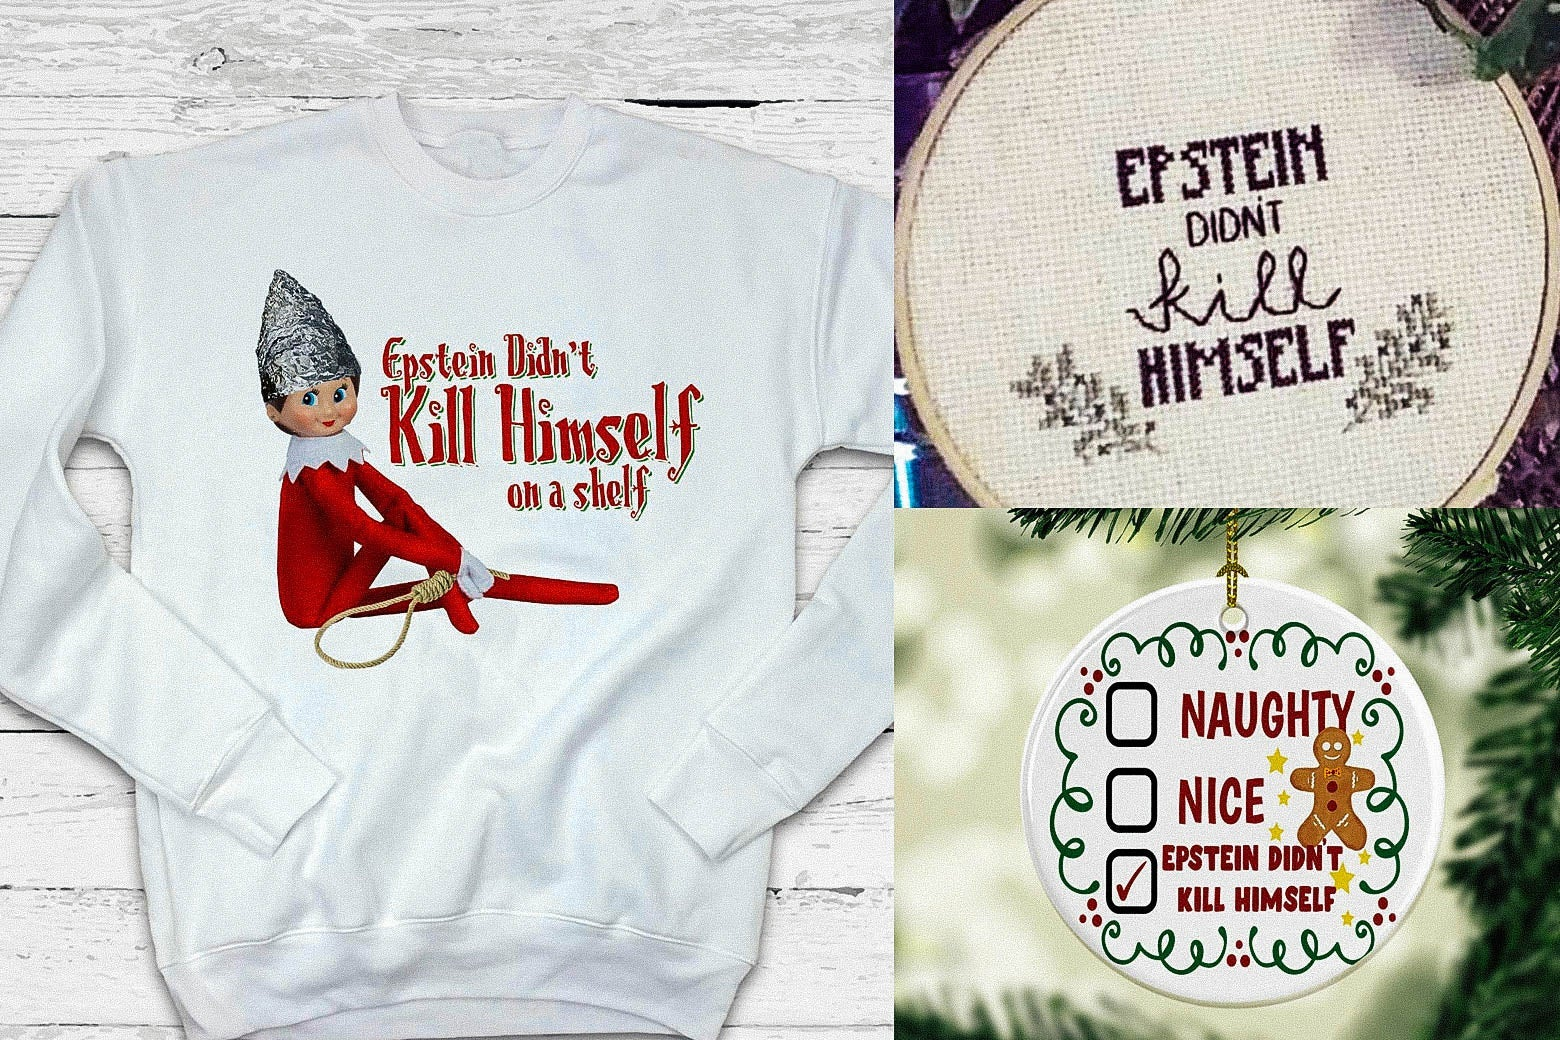 There\u0027s \u201cEpstein didn\u0027t kill himself\u201d Christmas merch now.